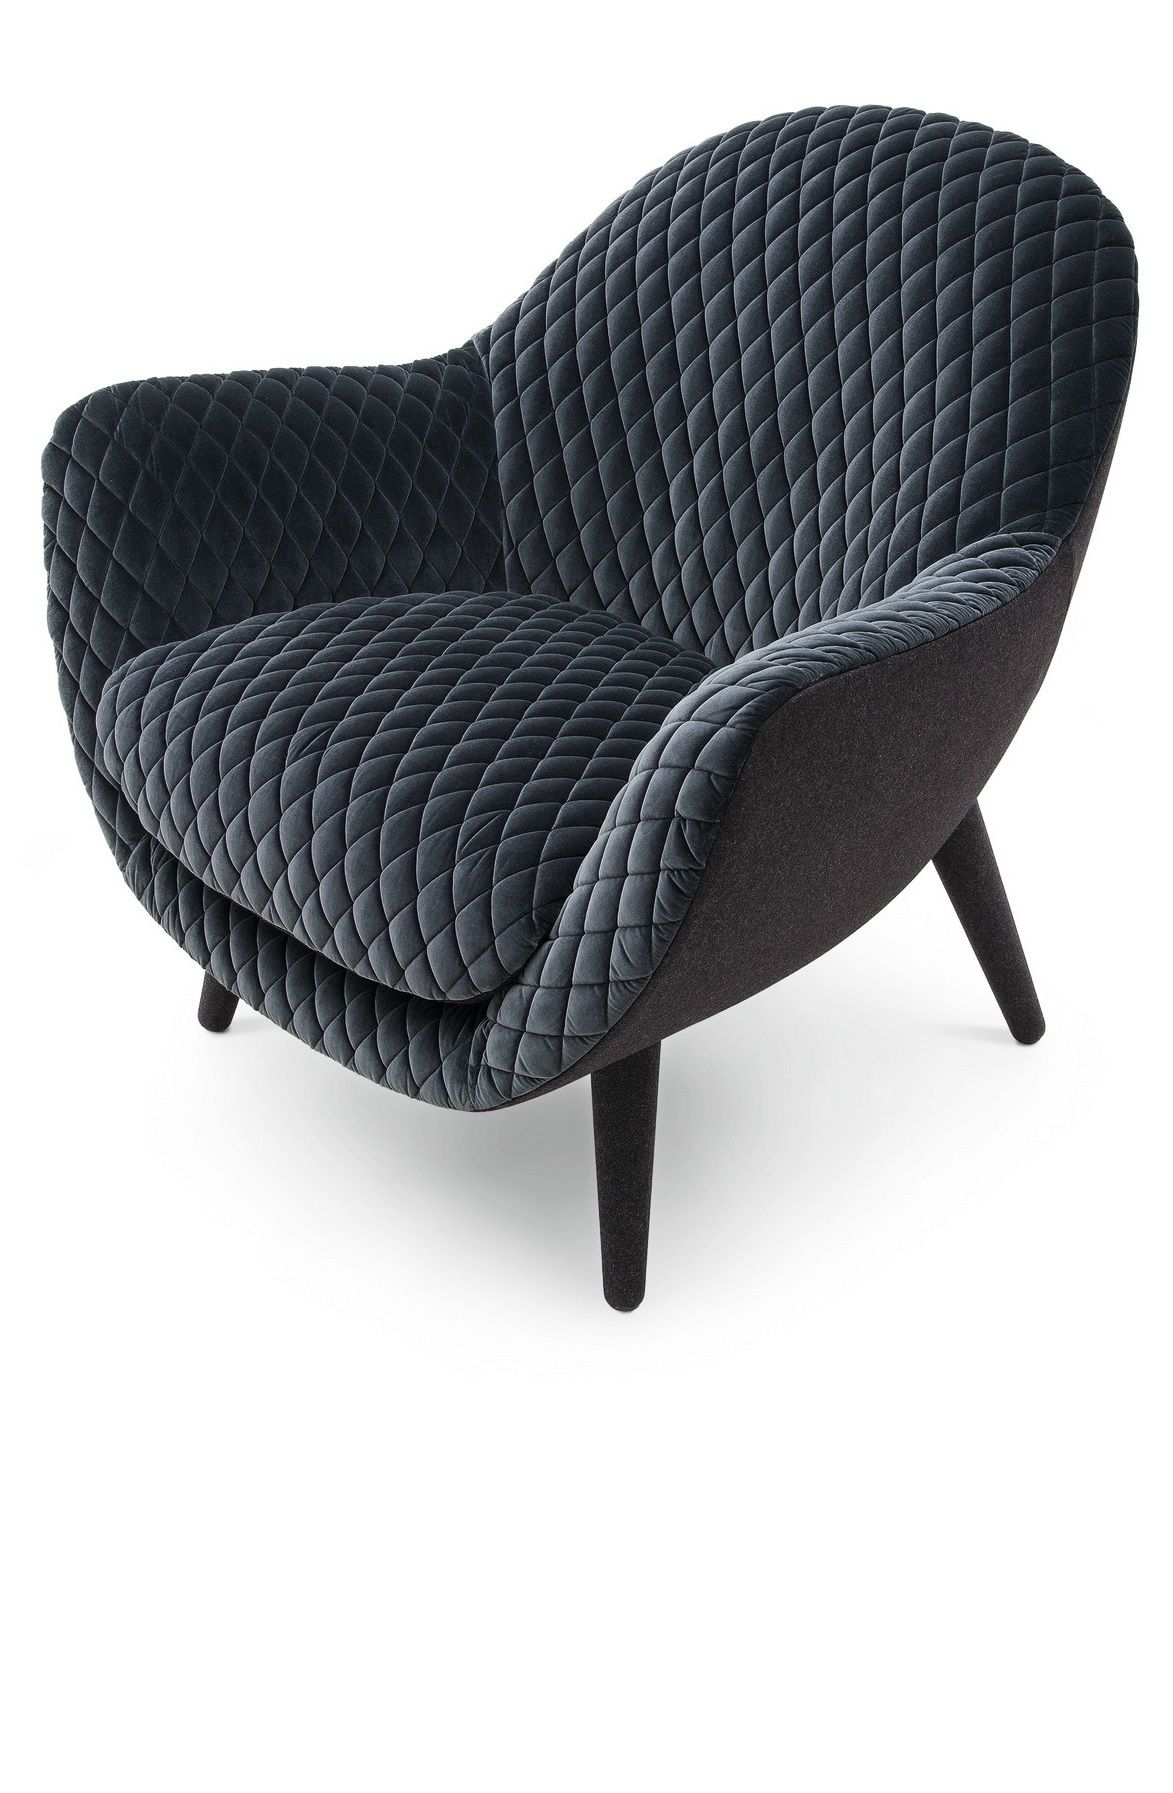 Mad Queen Chair By Marcel Wanders For Poliform In Matelasse Gibson Quilted  Velvet